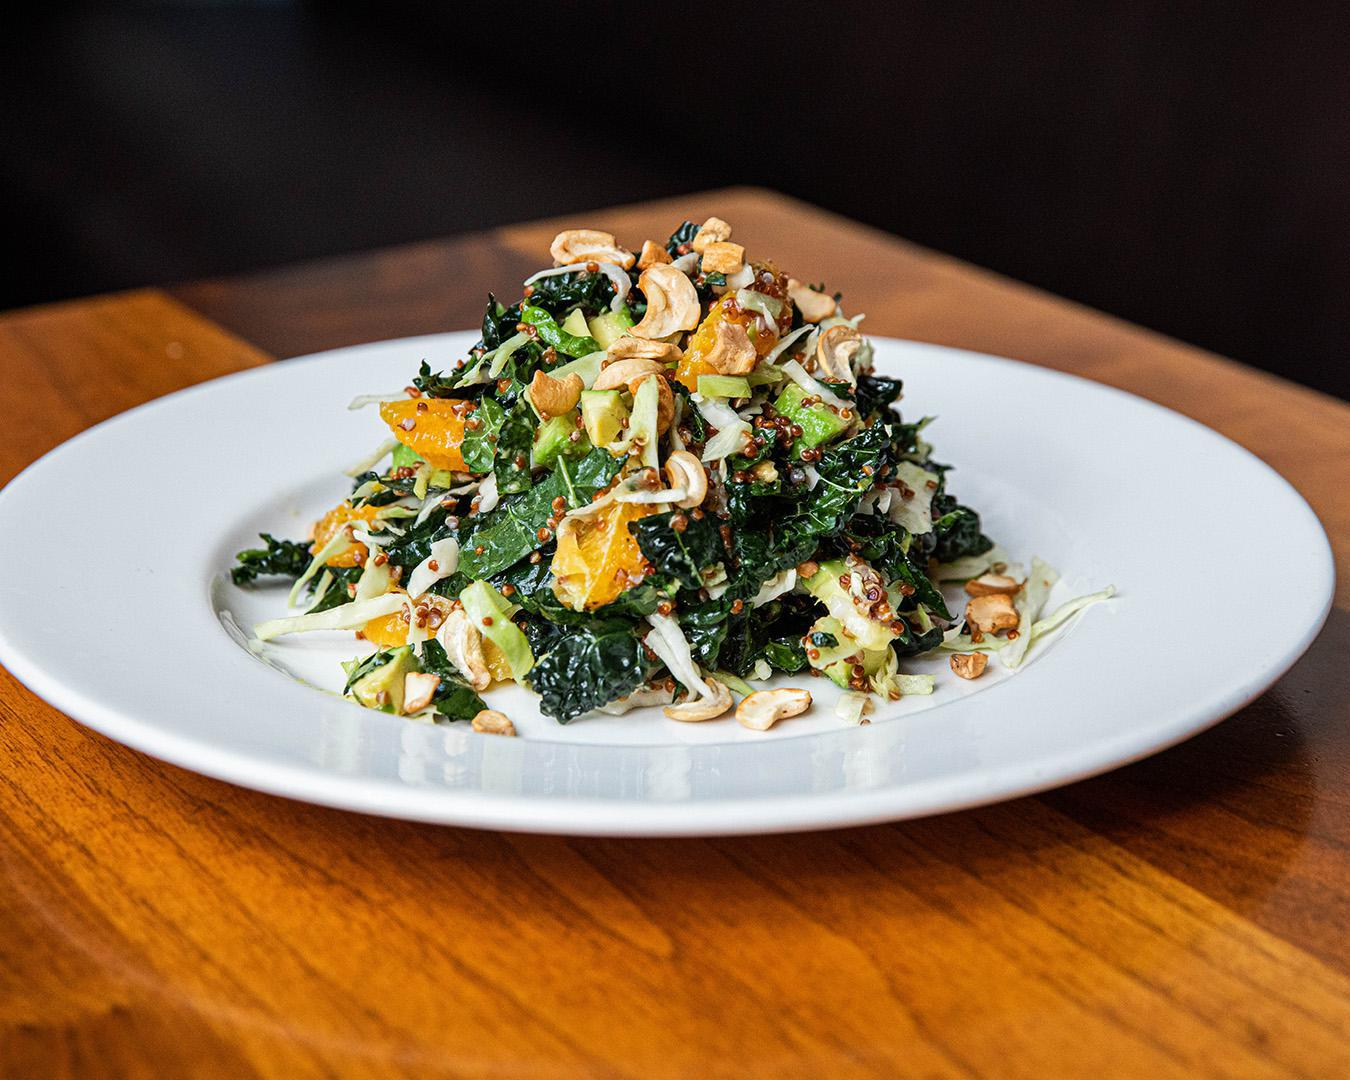 Kale & Grains Salad